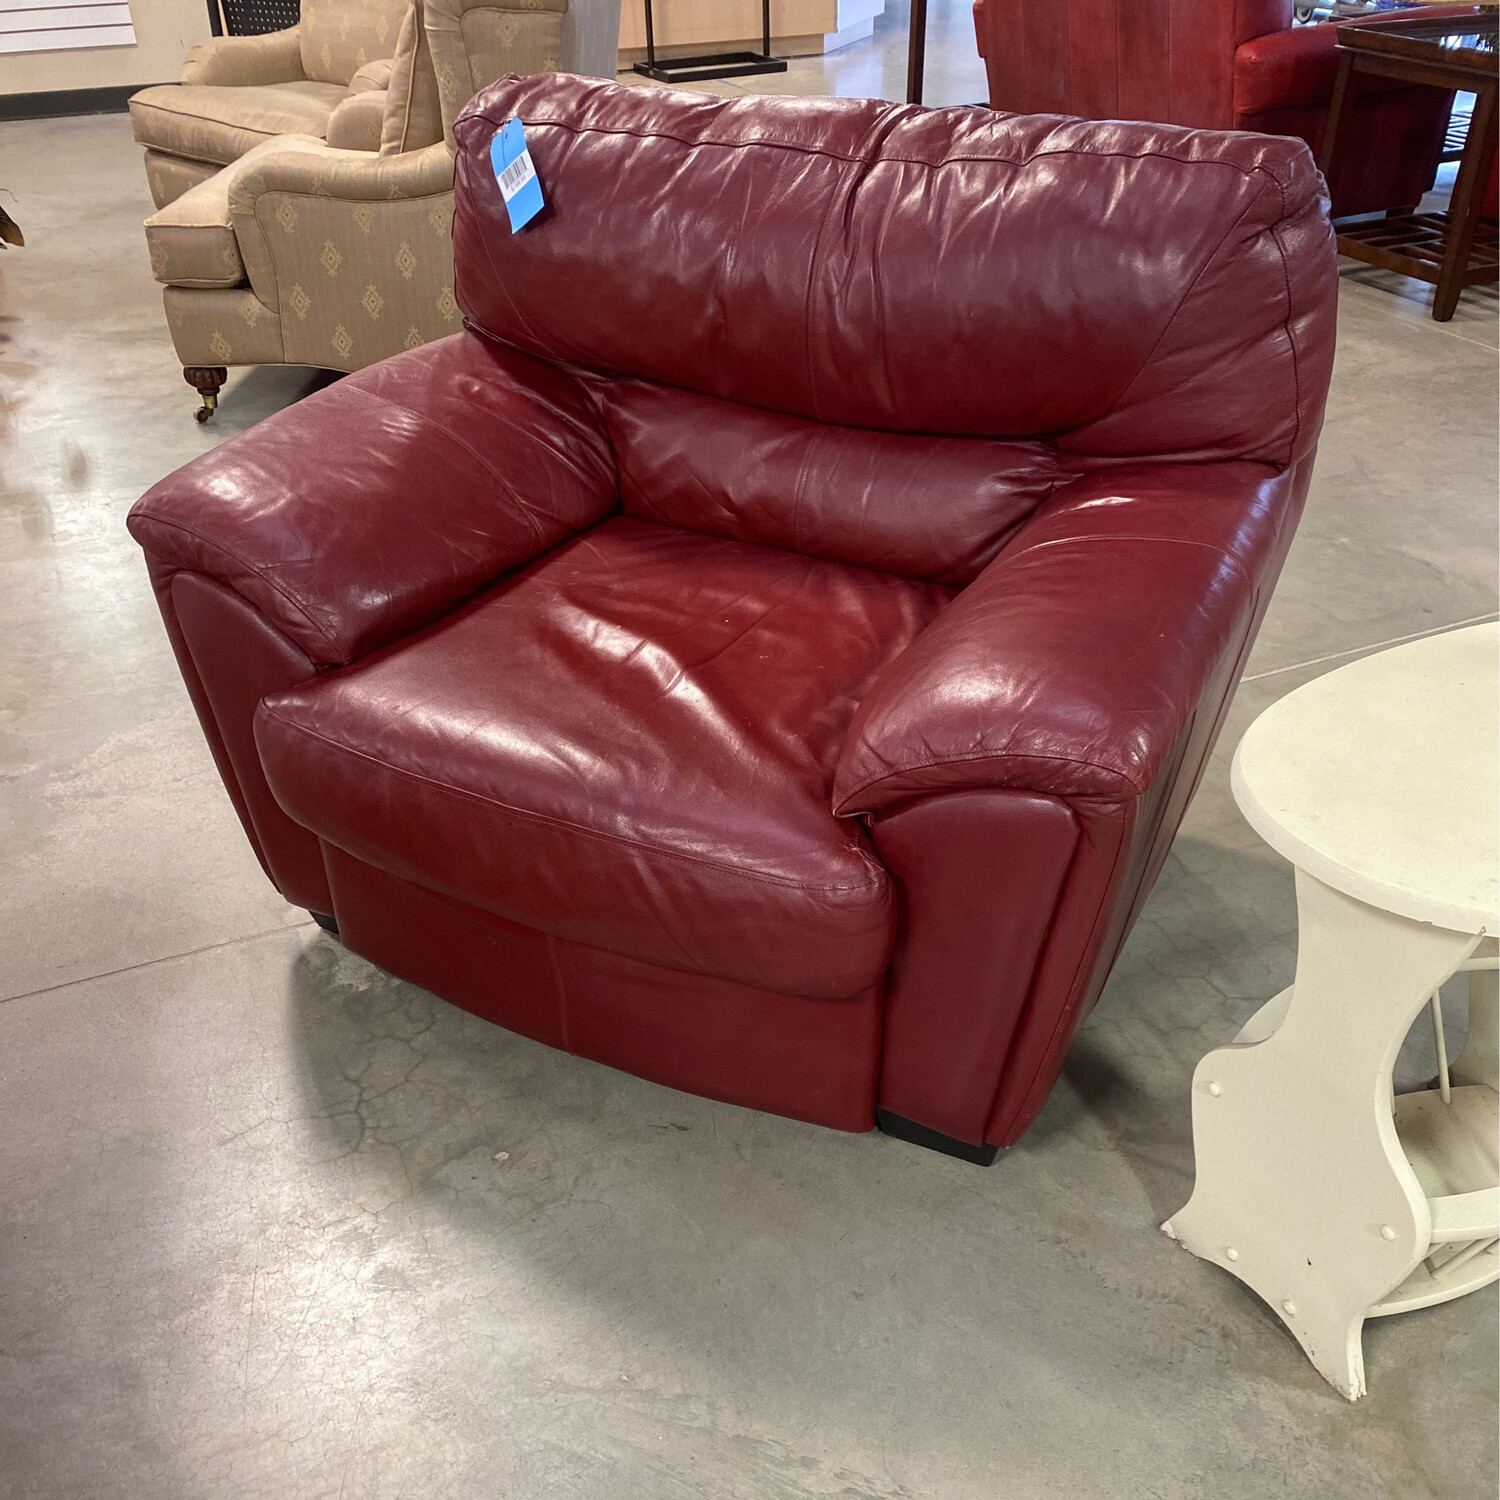 CLEARANCE RED LEATHER LINGINGROOM CHAIR